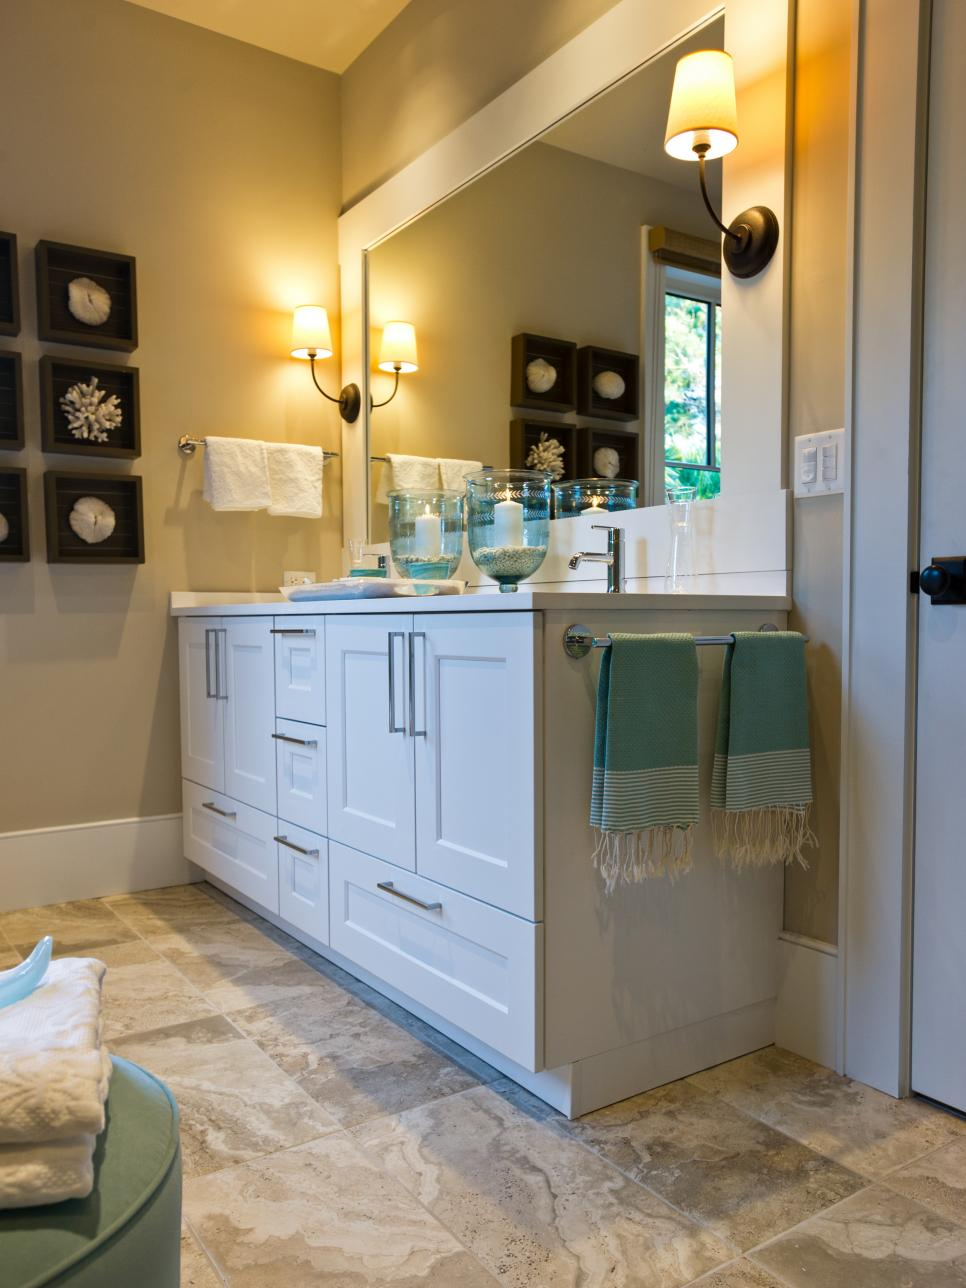 Hgtv dream home 2013 master bathroom pictures and video for Home and bathroom